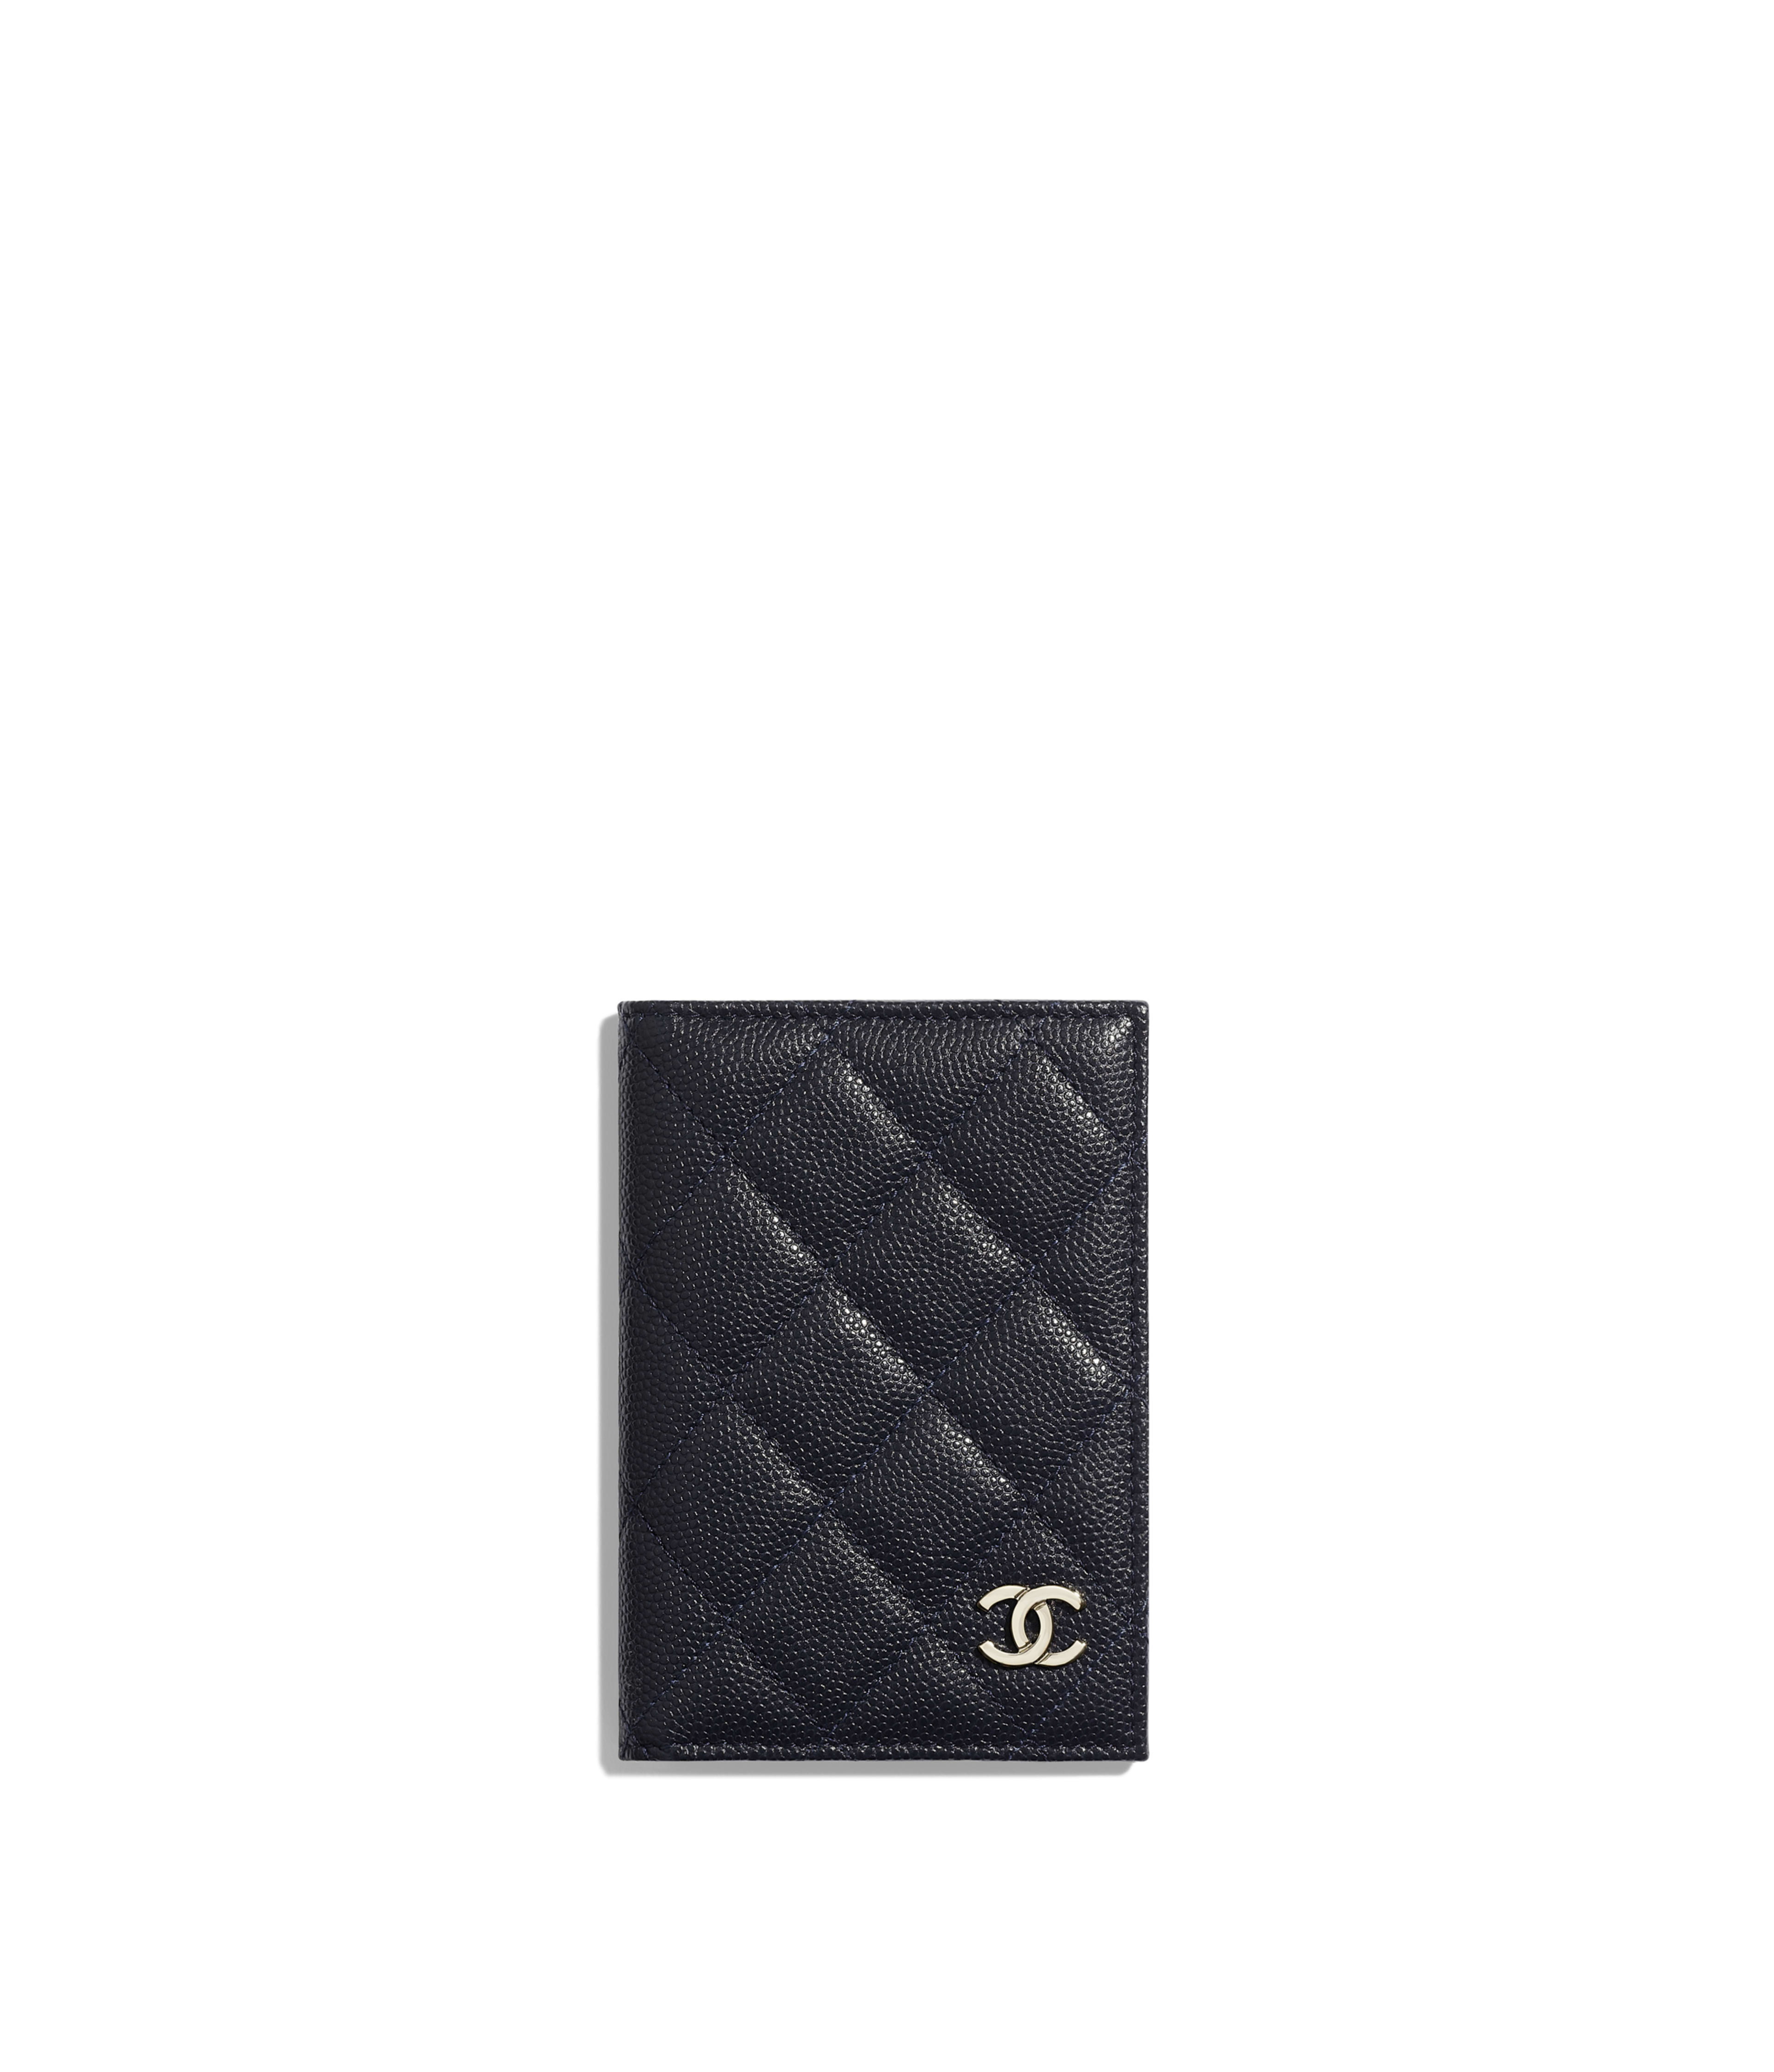 803c55bed3 Card Holders - Small leather goods | CHANEL